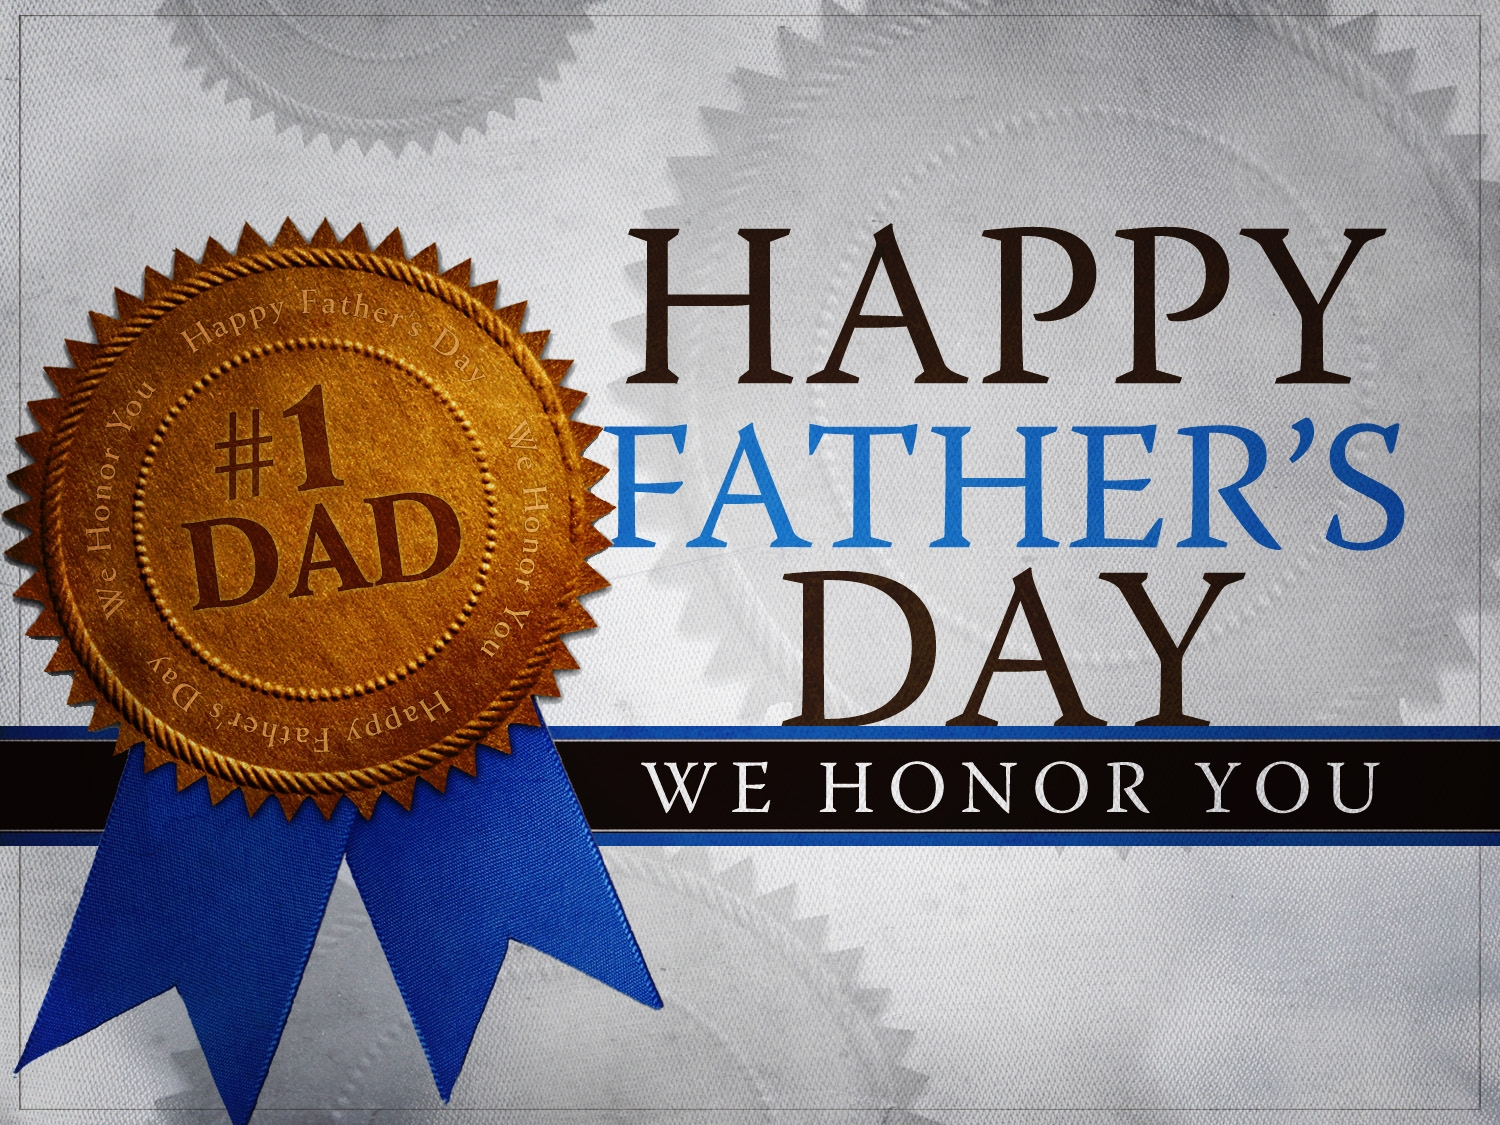 Harry blogs happy fathers day quotes from wife fathers day happy fathers day quotes from wife fathers day messages from wife m4hsunfo